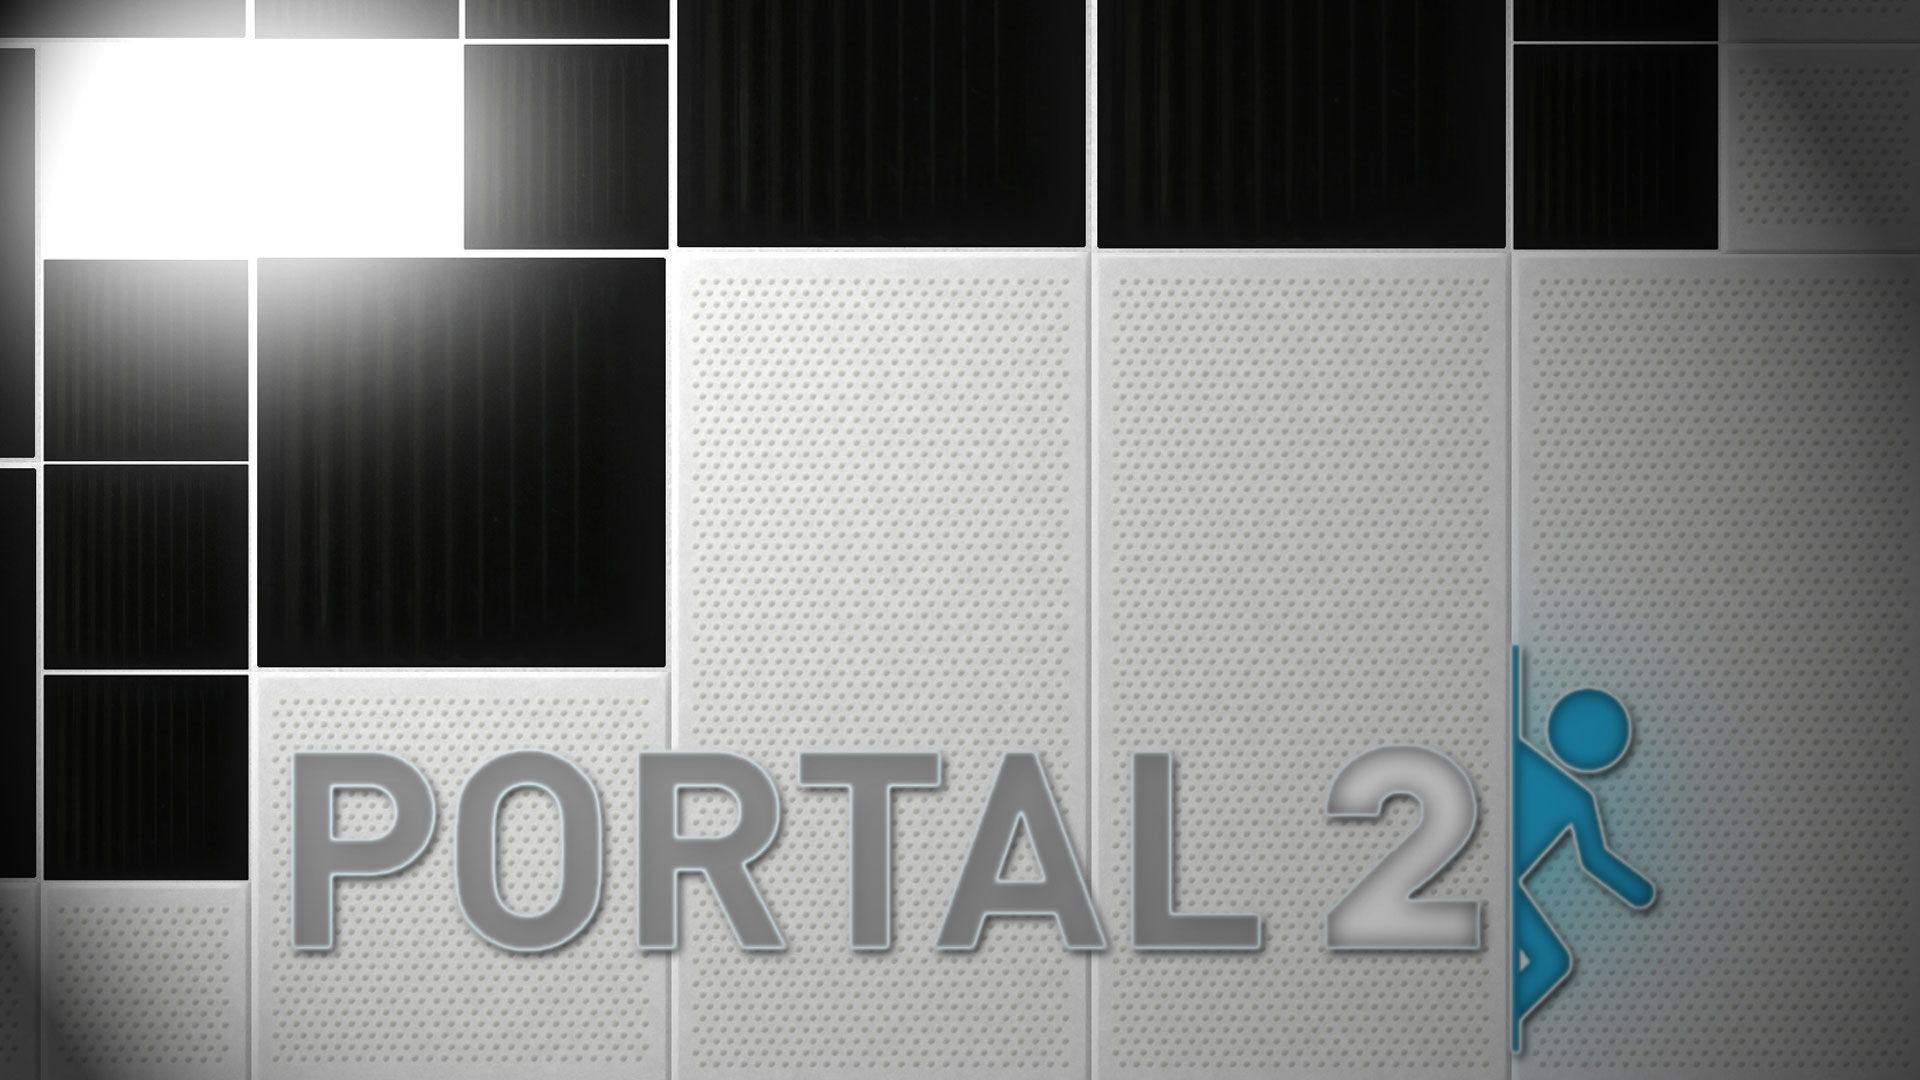 Portal 2 Wallpapers in HD High Resolution Page 3 1920x1080